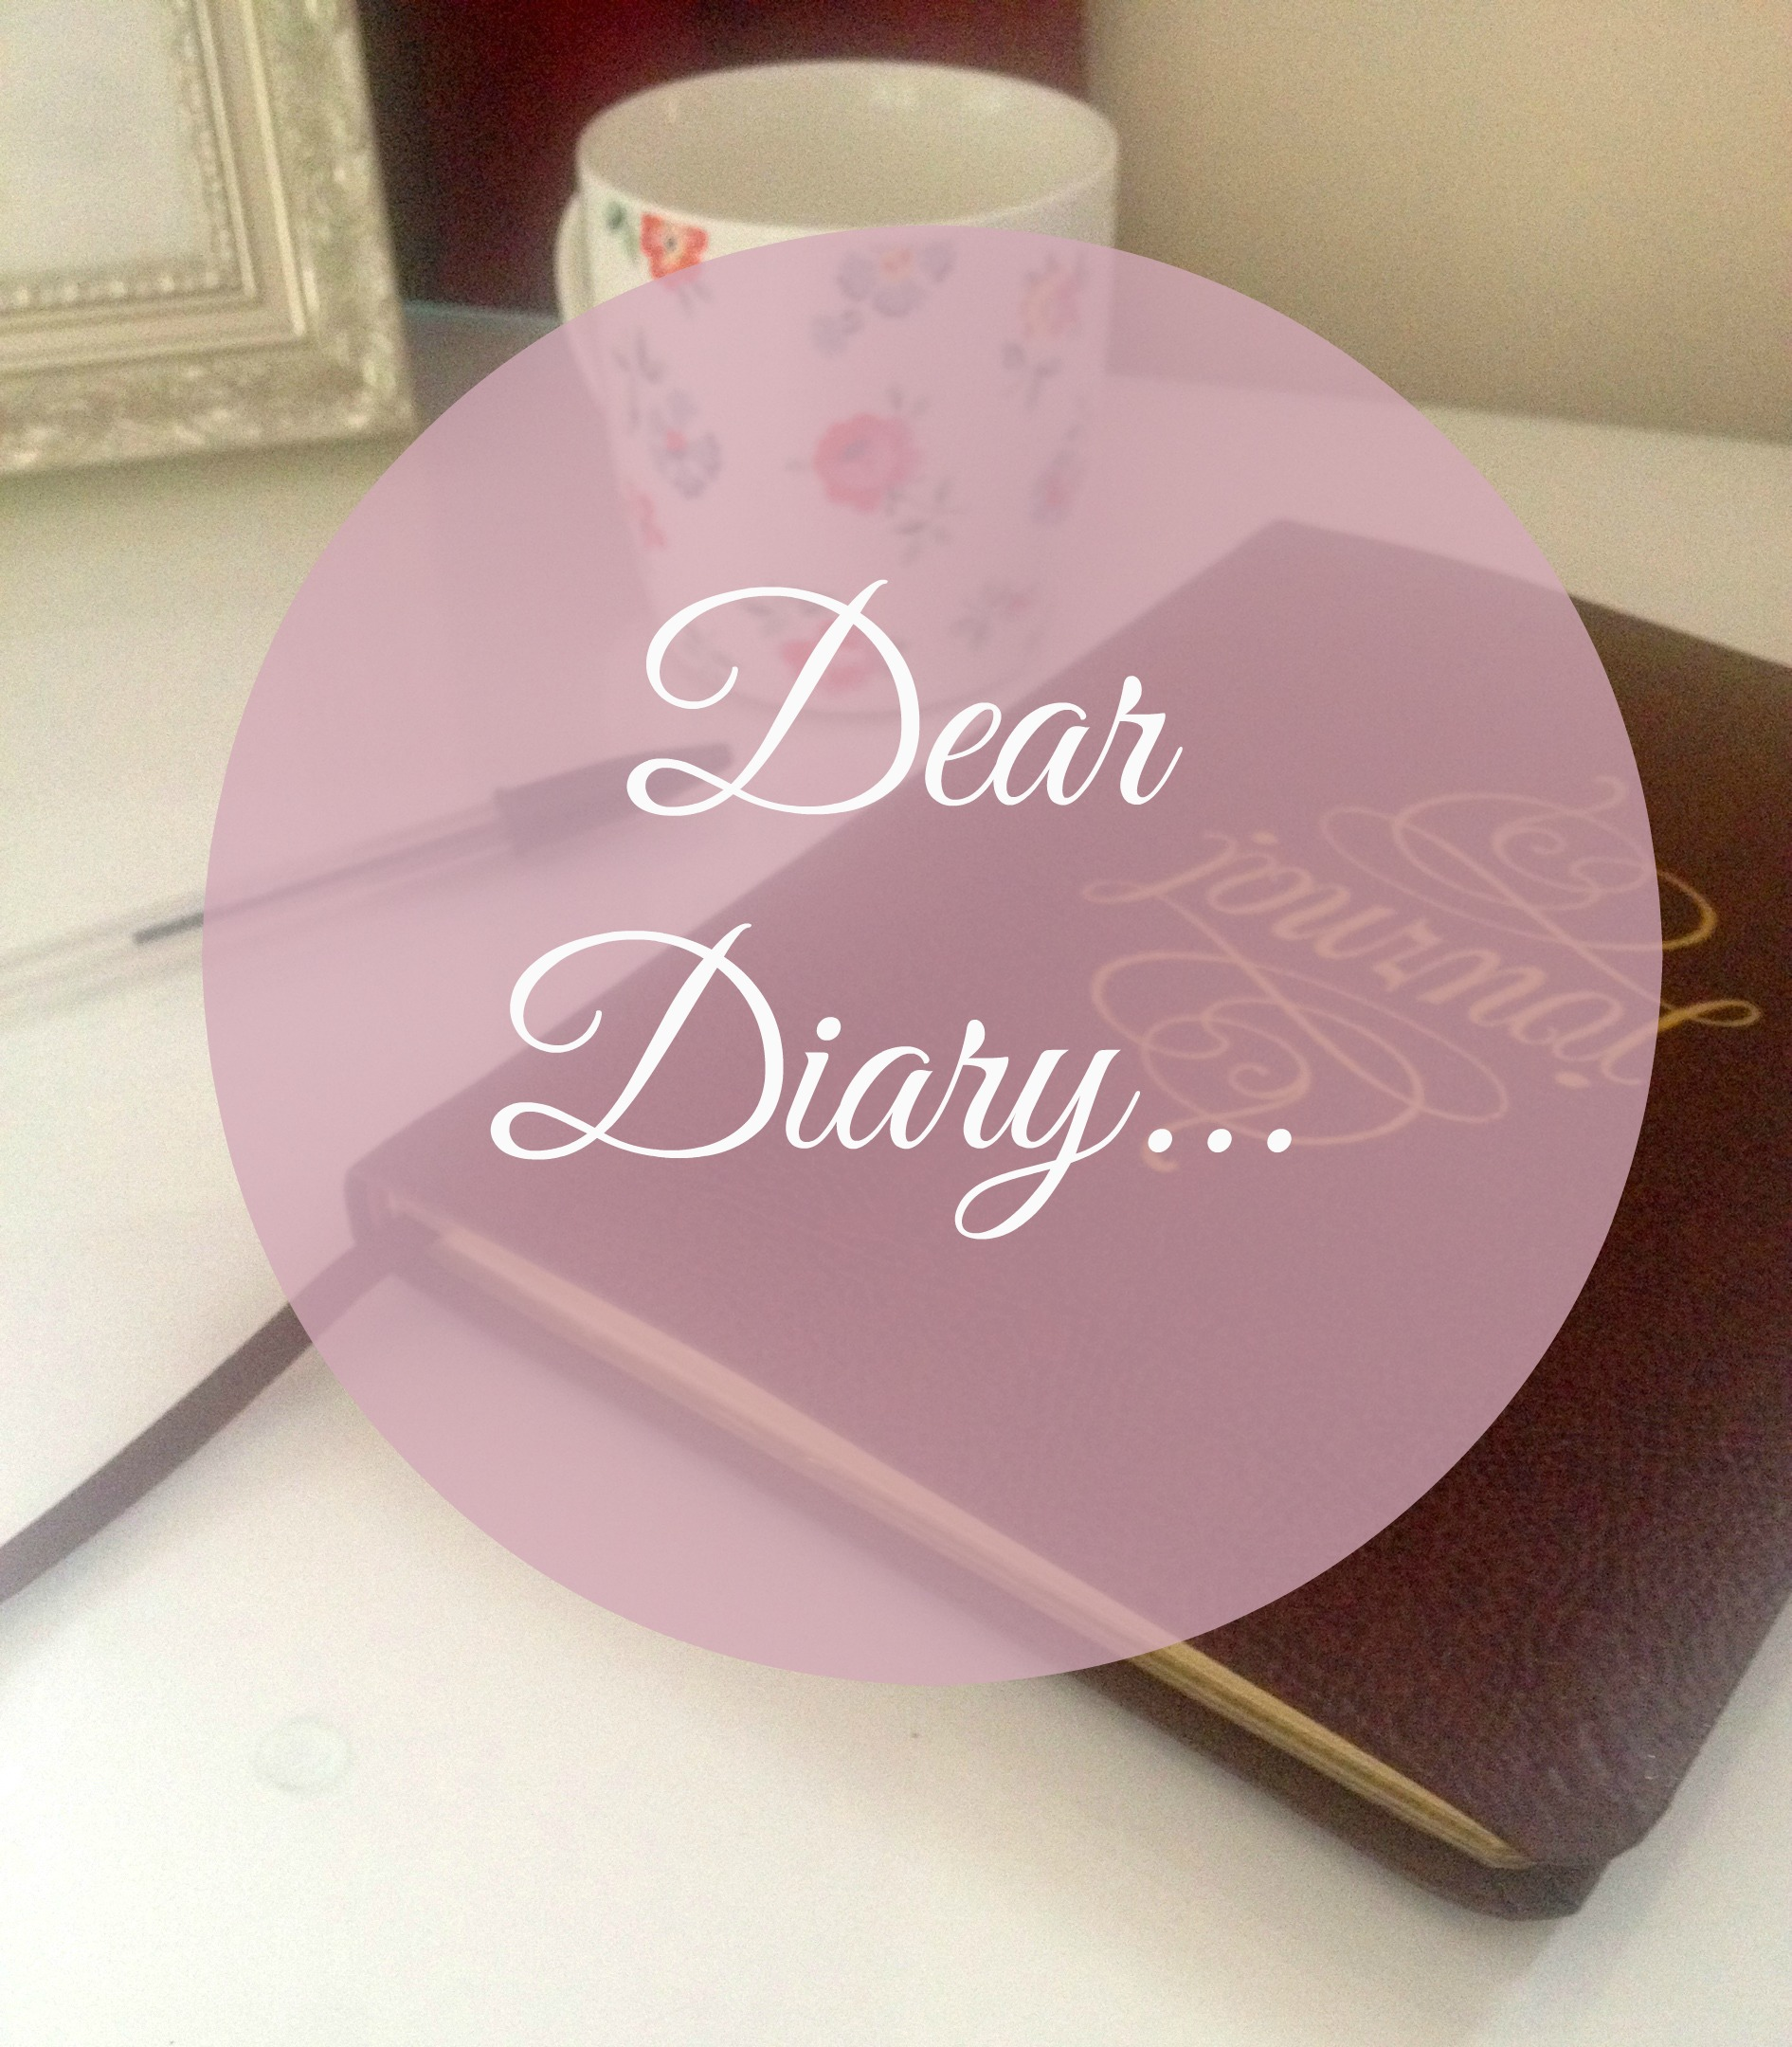 Dear Diary: My Anxiety Triggers